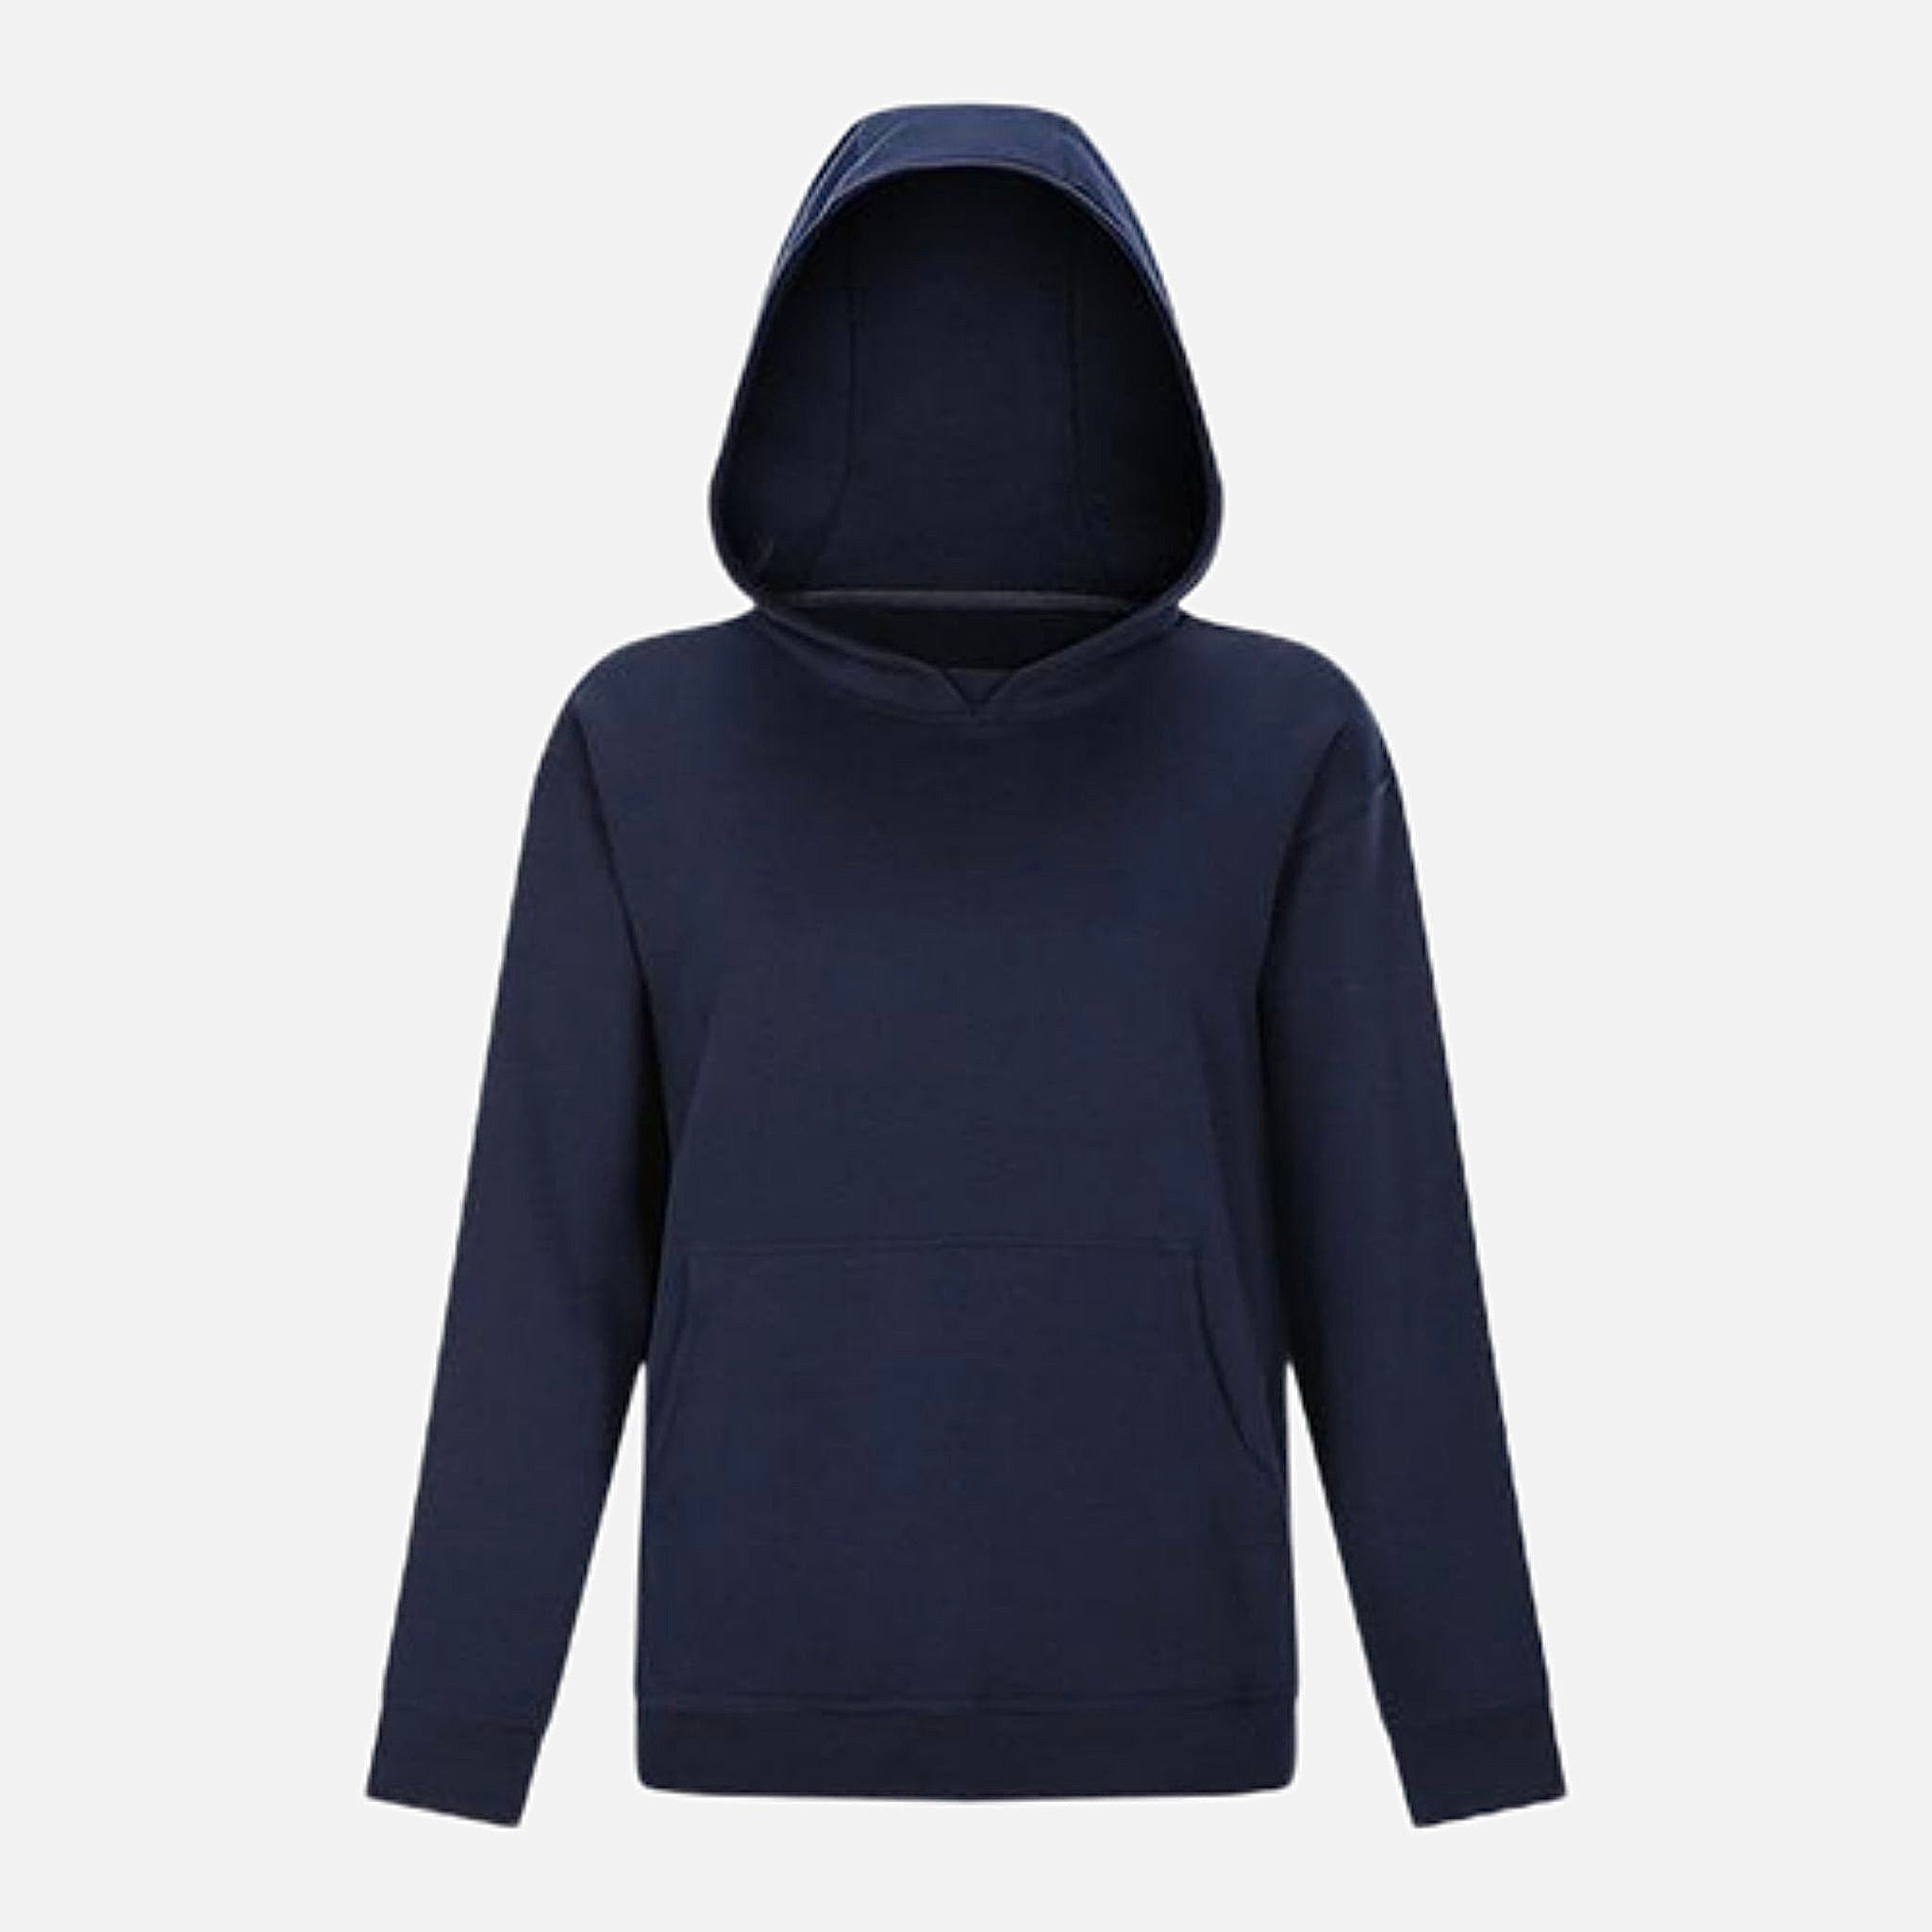 Vintage Fleece Hoodie      Classic Leisure Pocket Warm Hip Length Navy Blue color Hooded Exercise Training Gym Sport Fitness Workout Women's Outdoor miFit Sweatshirts Style Trend